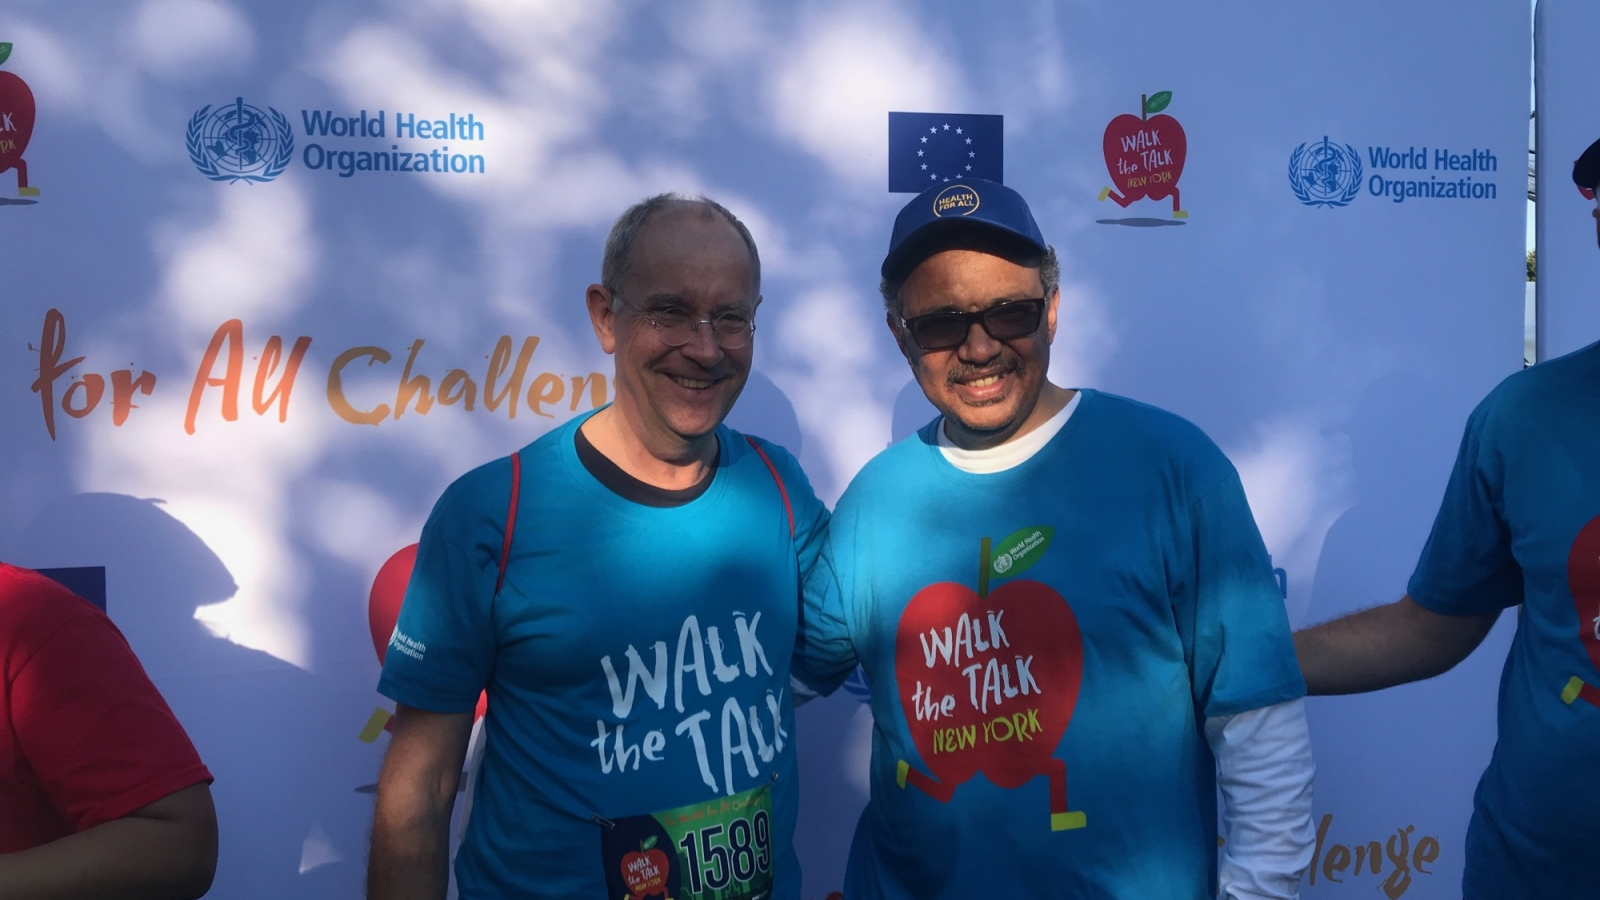 Bo Norrving and WHO Director General Tedros Ghebreyesus at Walk-the-Talk WHO event in Central ParkSept 22nd 2019